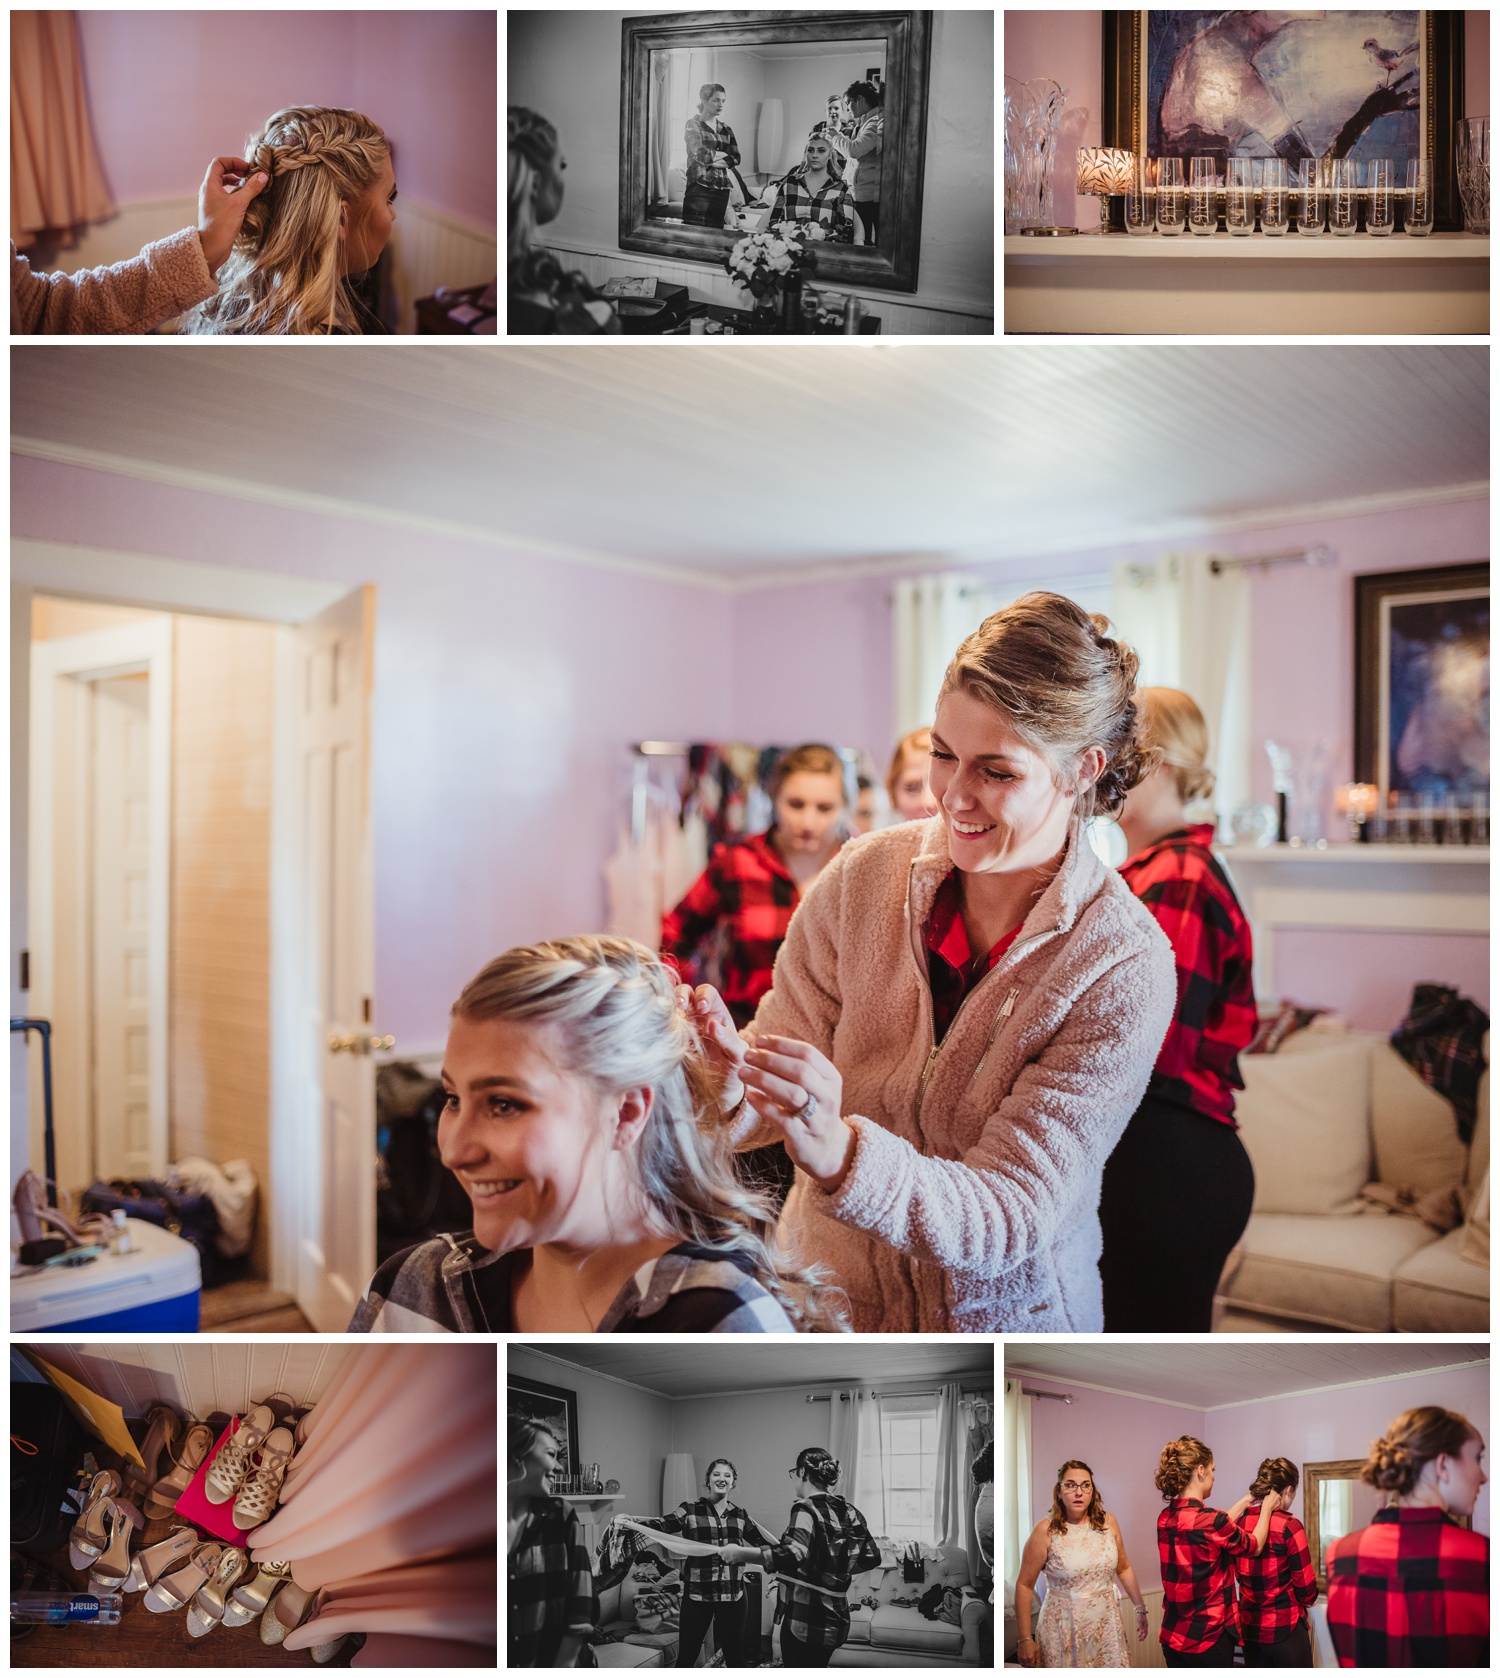 The bride gets ready with her bridesmaids before her wedding ceremony at The Warren Estate, images by Rose Trail Images of Rolesville, NC.